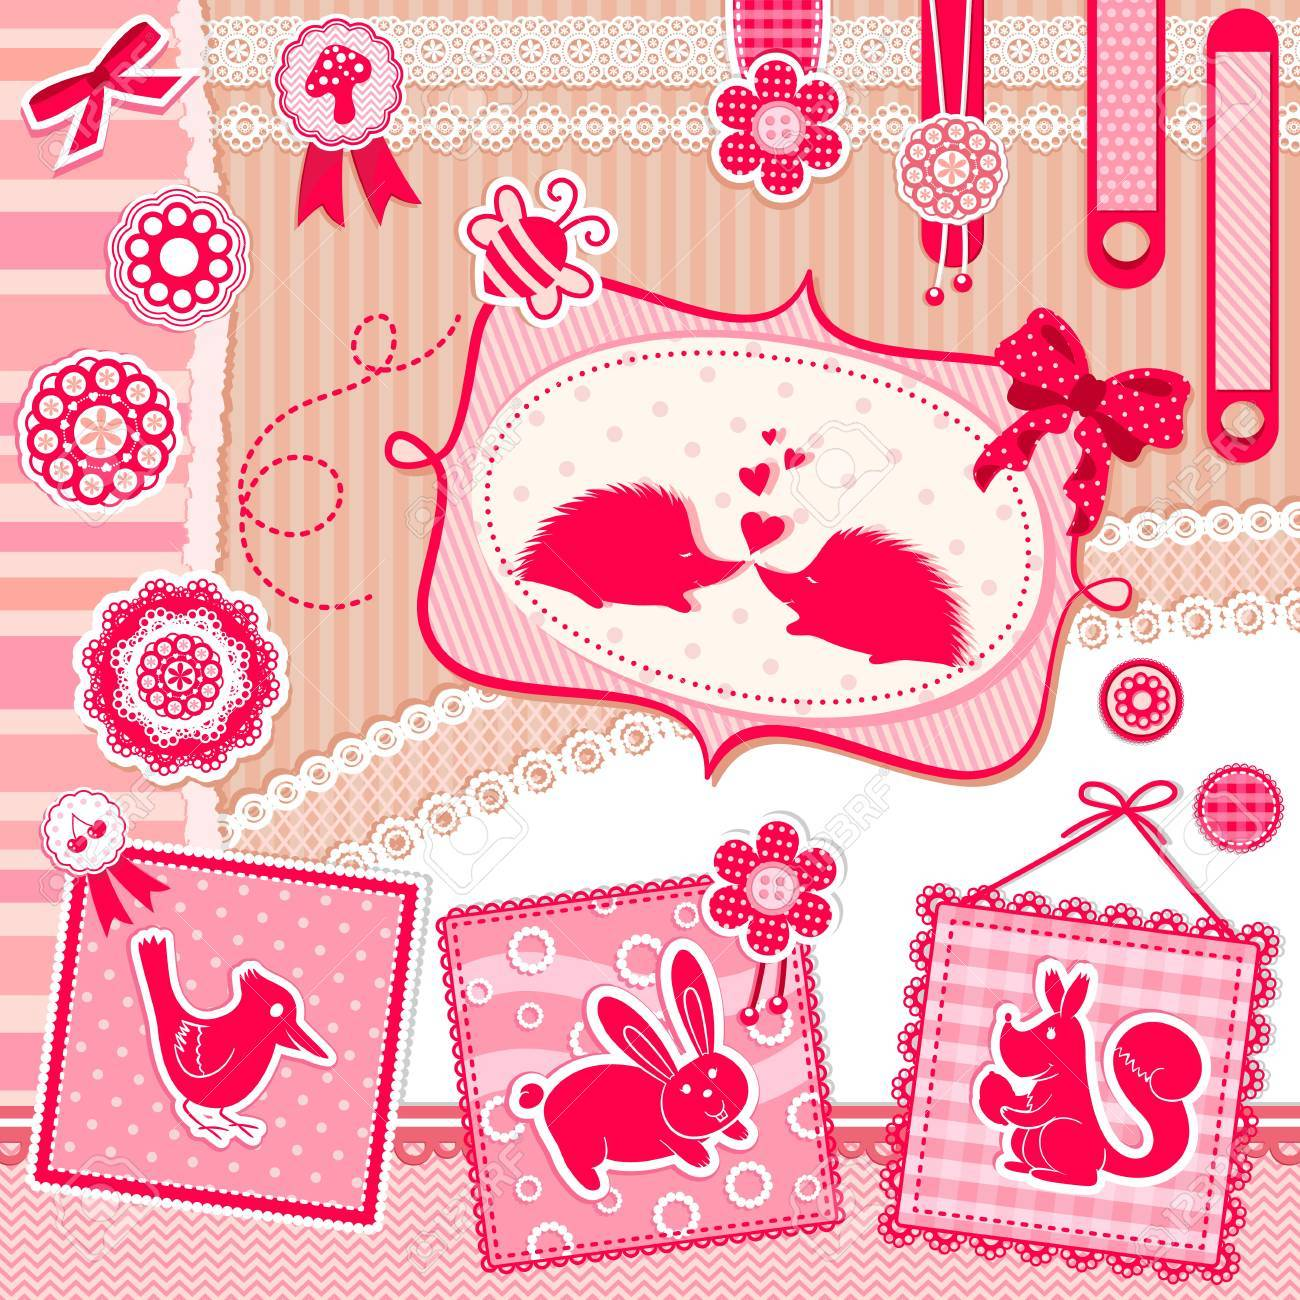 Set of cute design elements with animals and vintage style decorations Stock Vector - 16511548